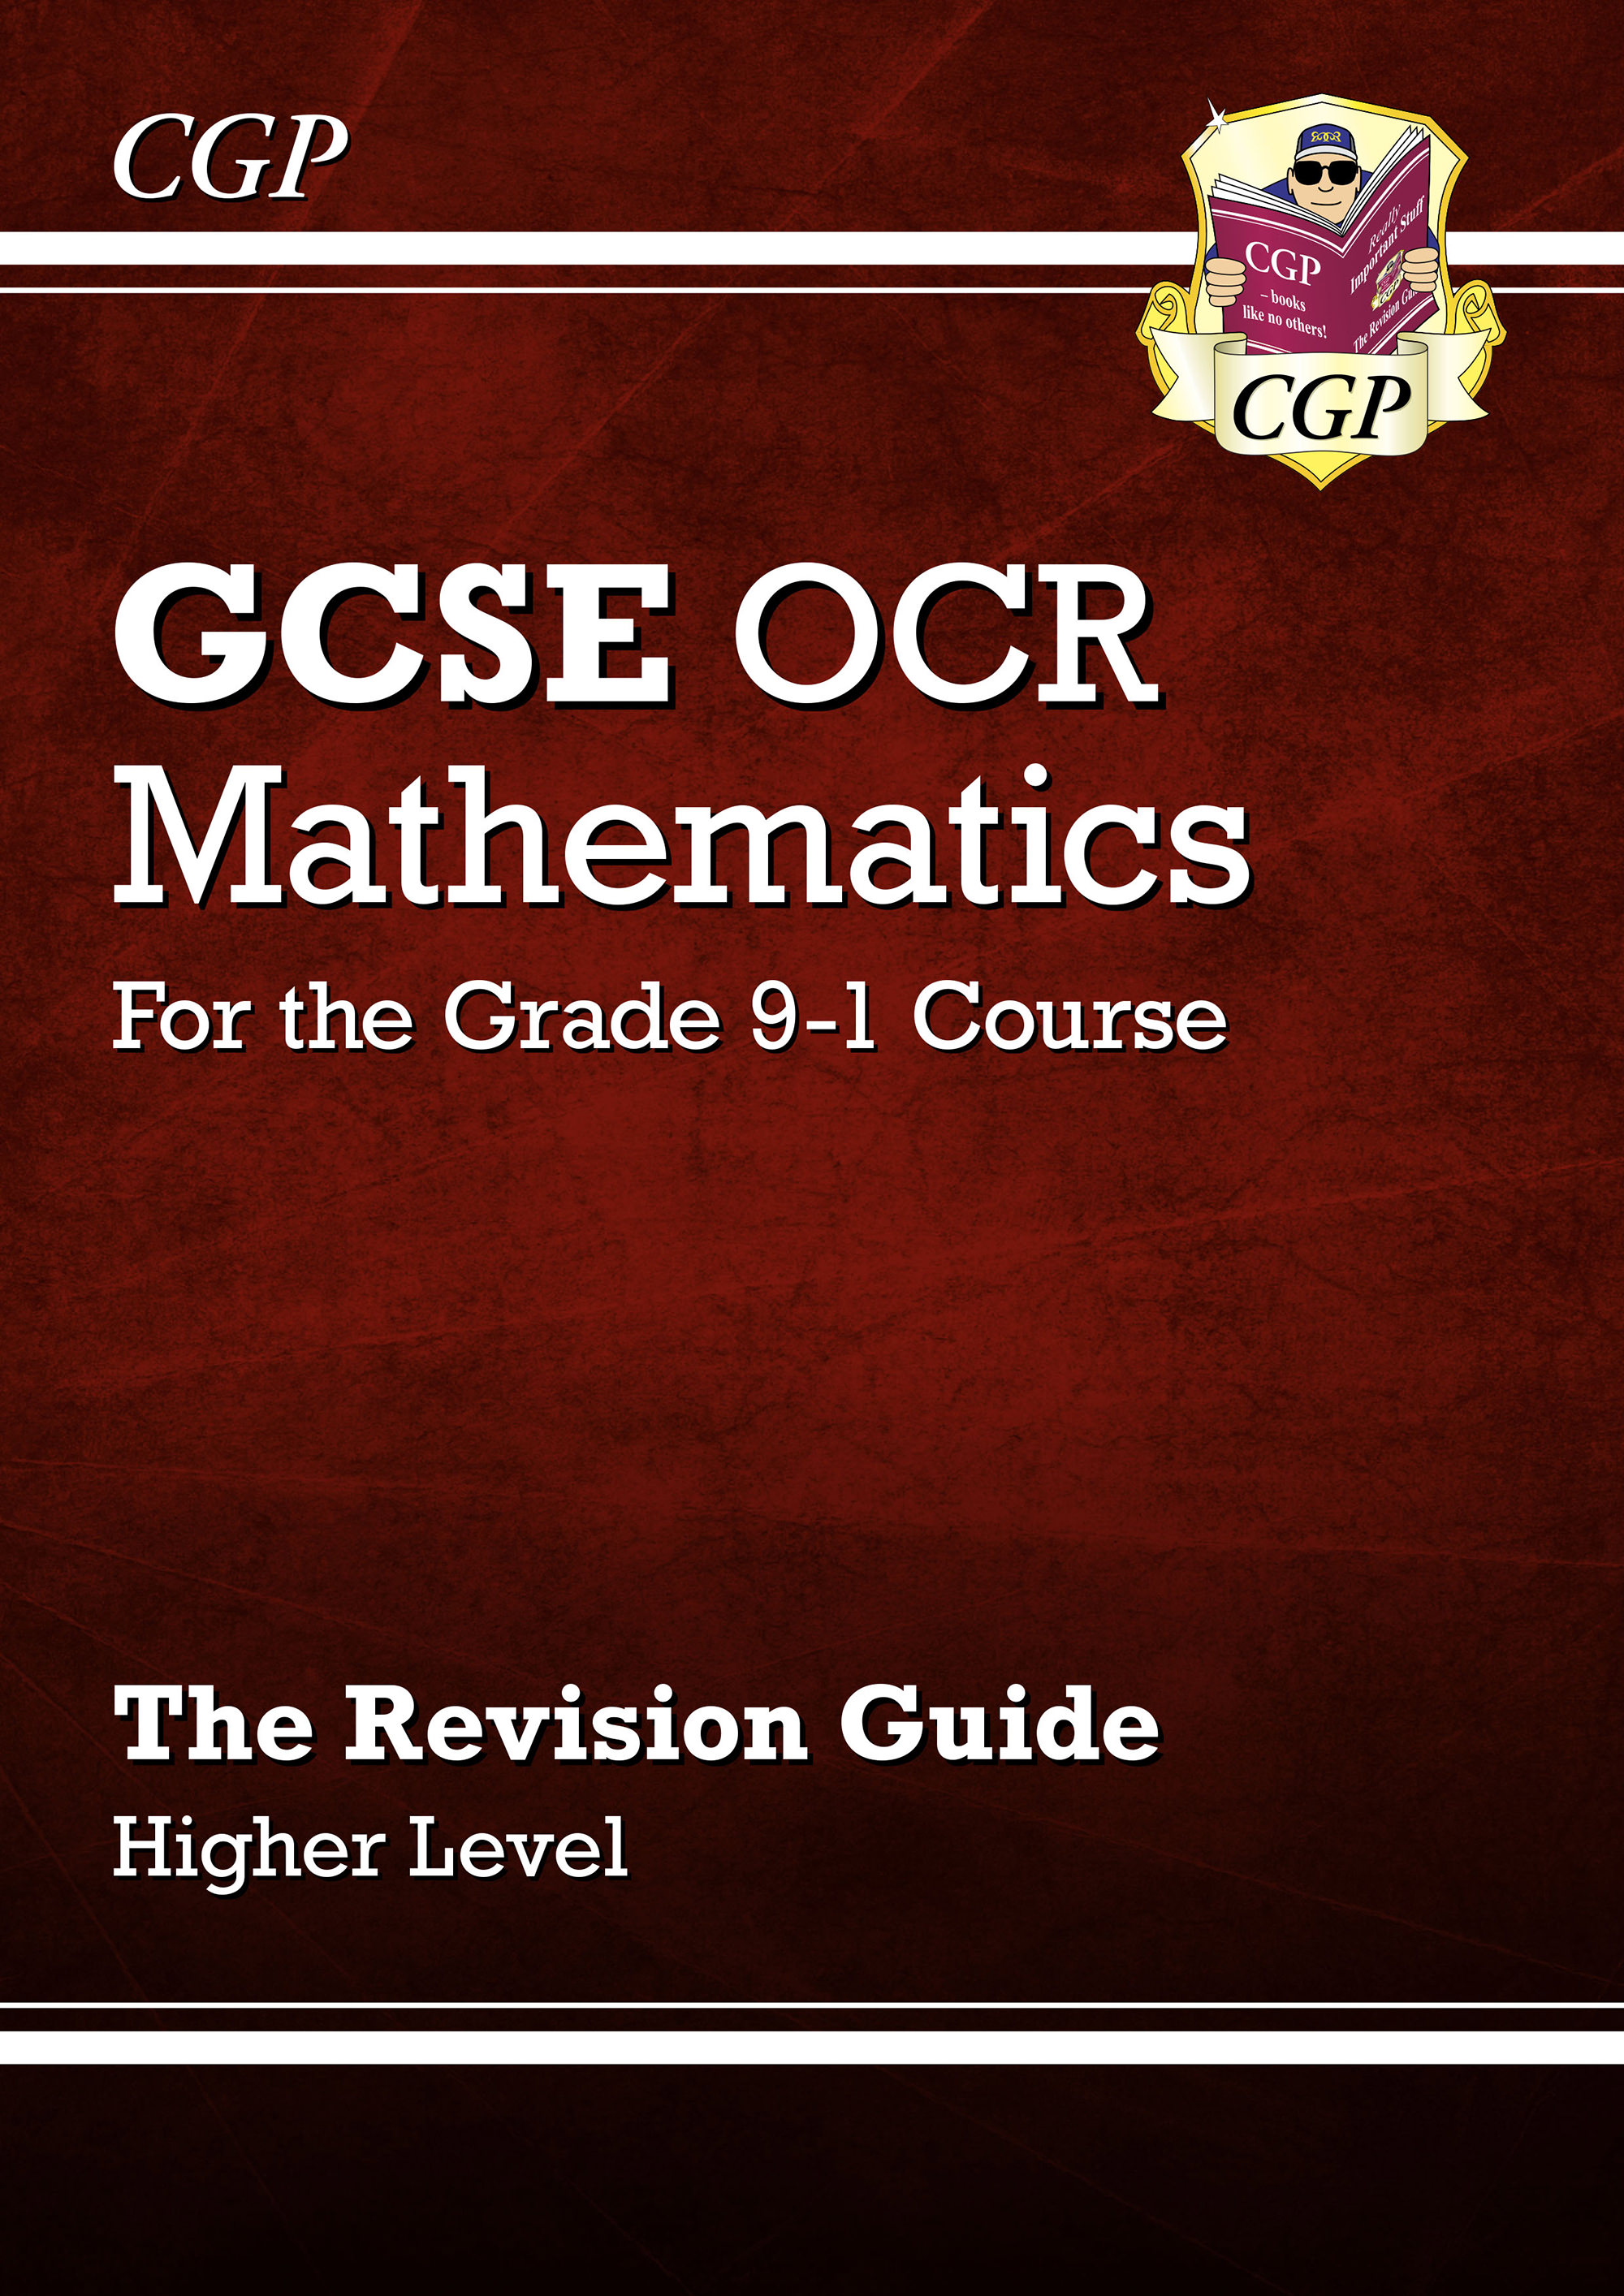 MCHR46DK - GCSE Maths OCR Revision Guide: Higher - for the Grade 9-1 Course